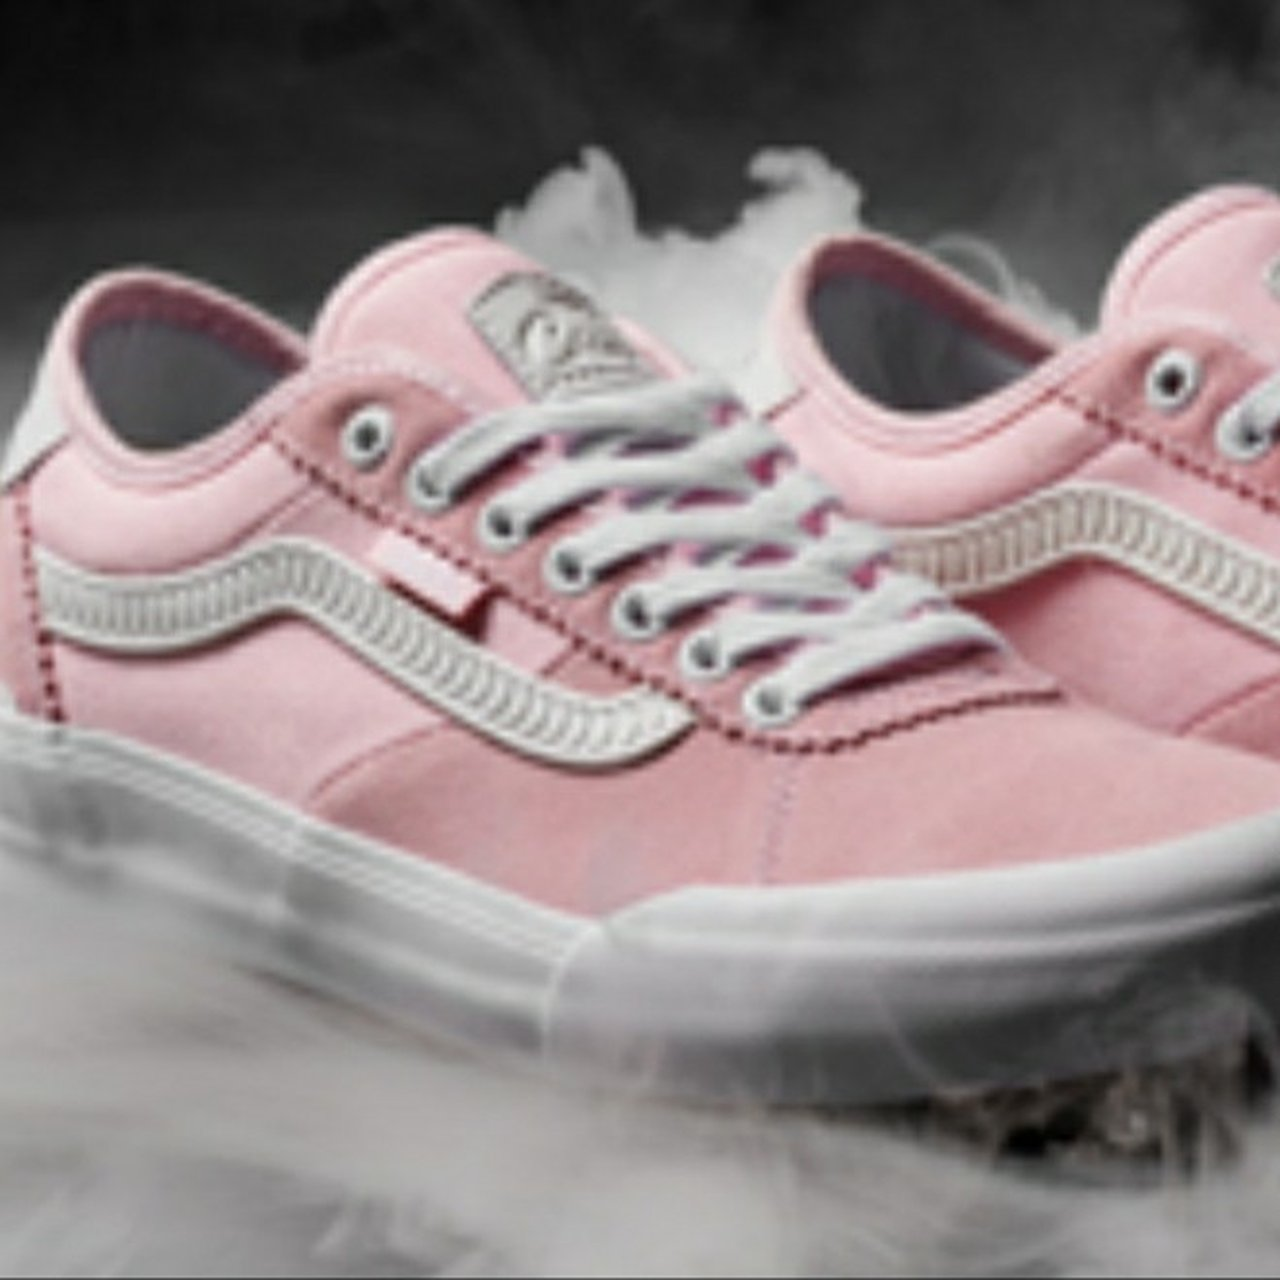 fdafb316ce1d9e SOLD OUT Vans Chima Pro 2 Spitfire Limited Edition in Pink a - Depop